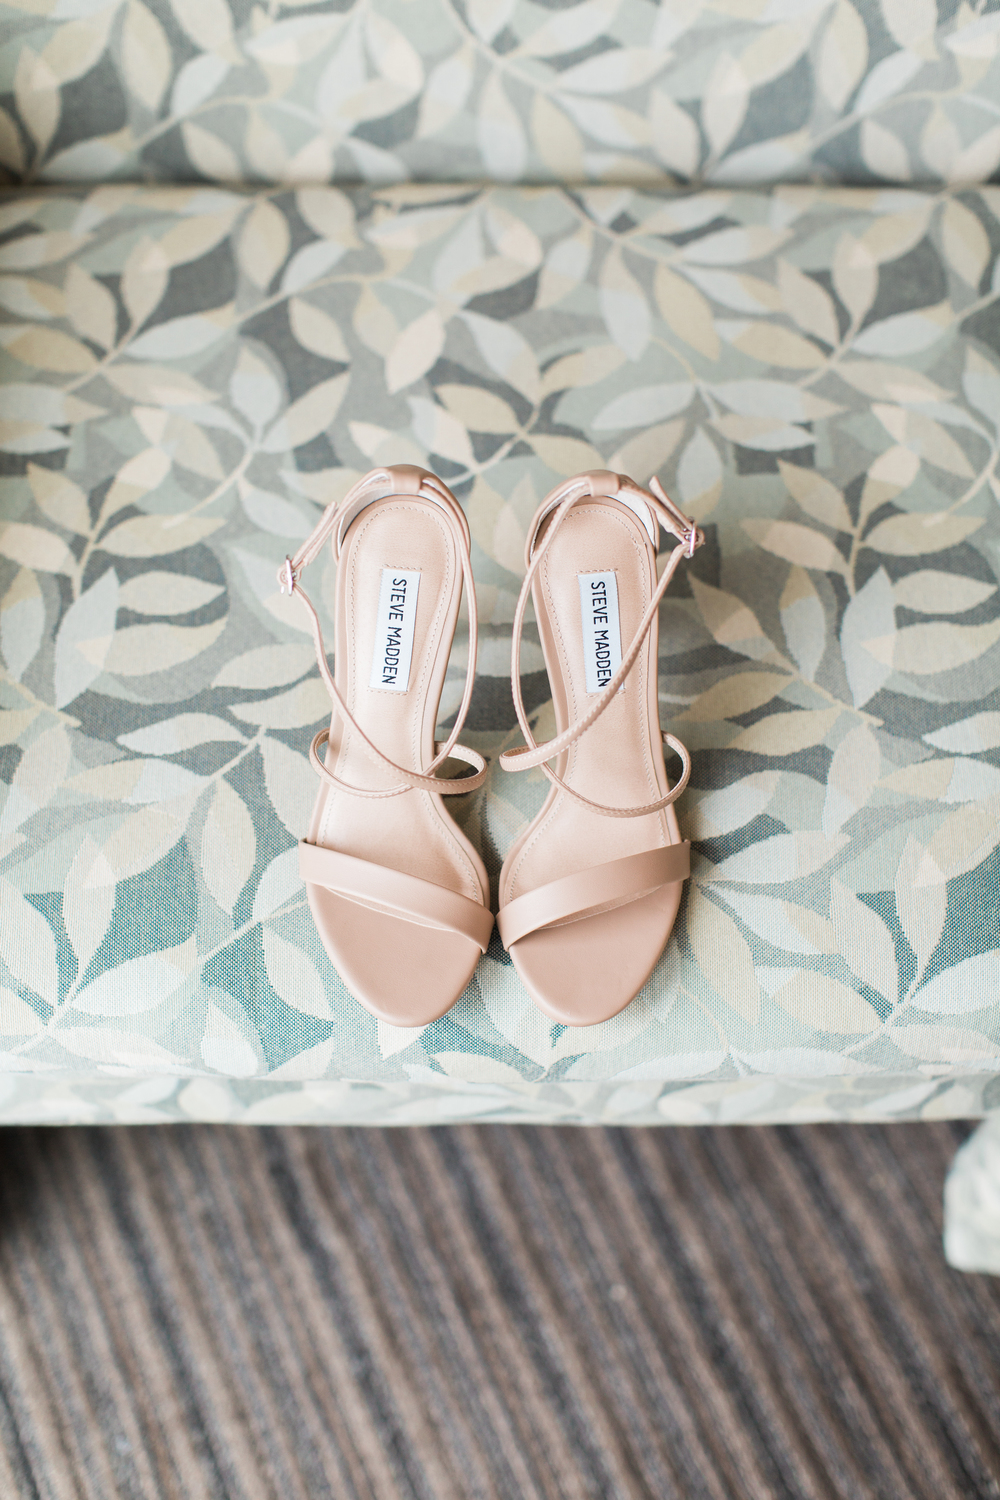 05-wedding-shoes-on-chair.jpg